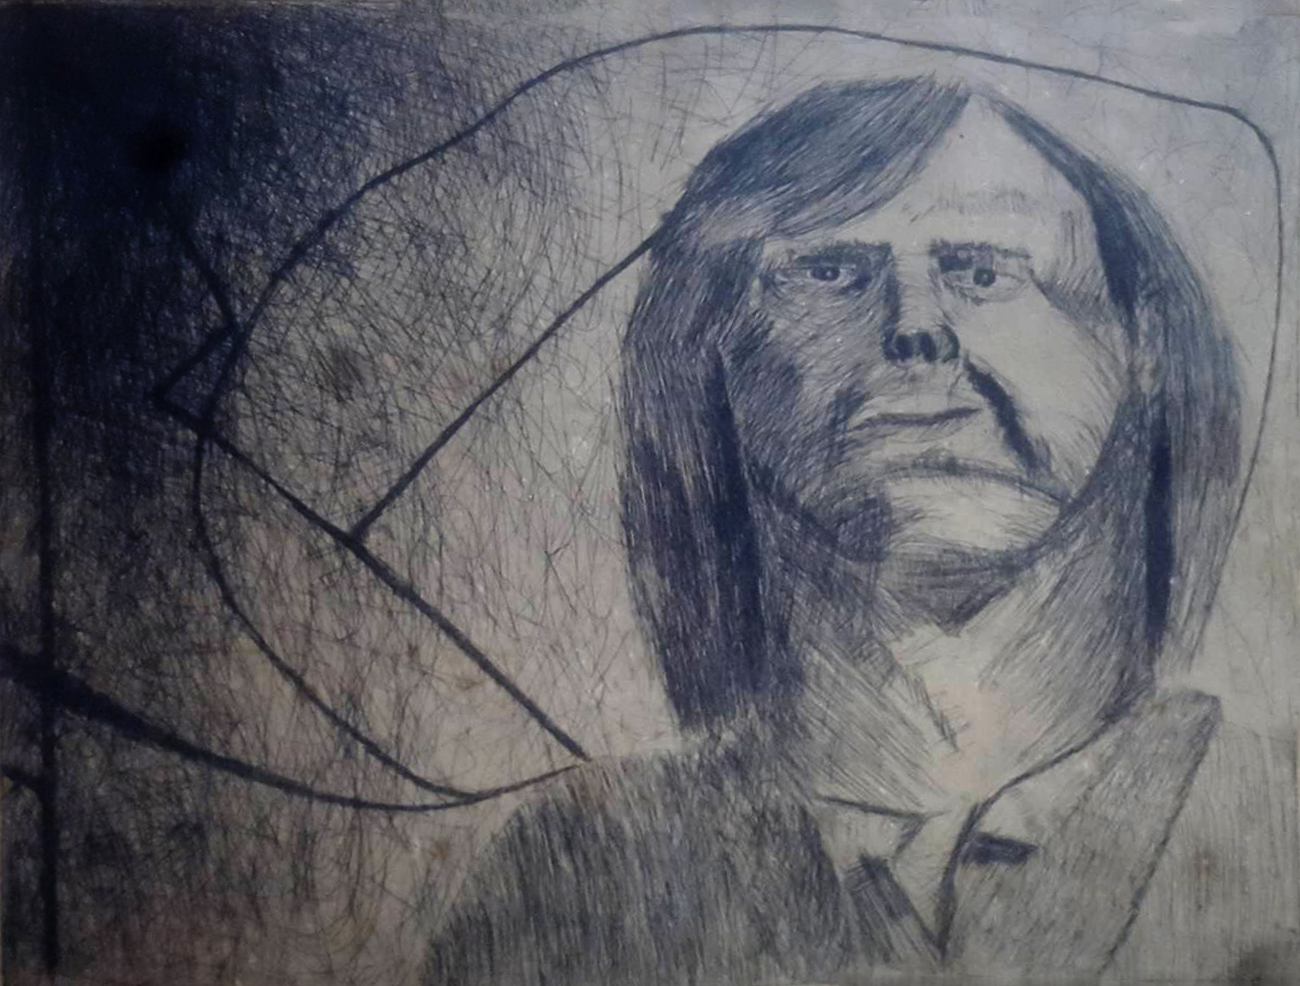 etching of self around 1973 by jocko500